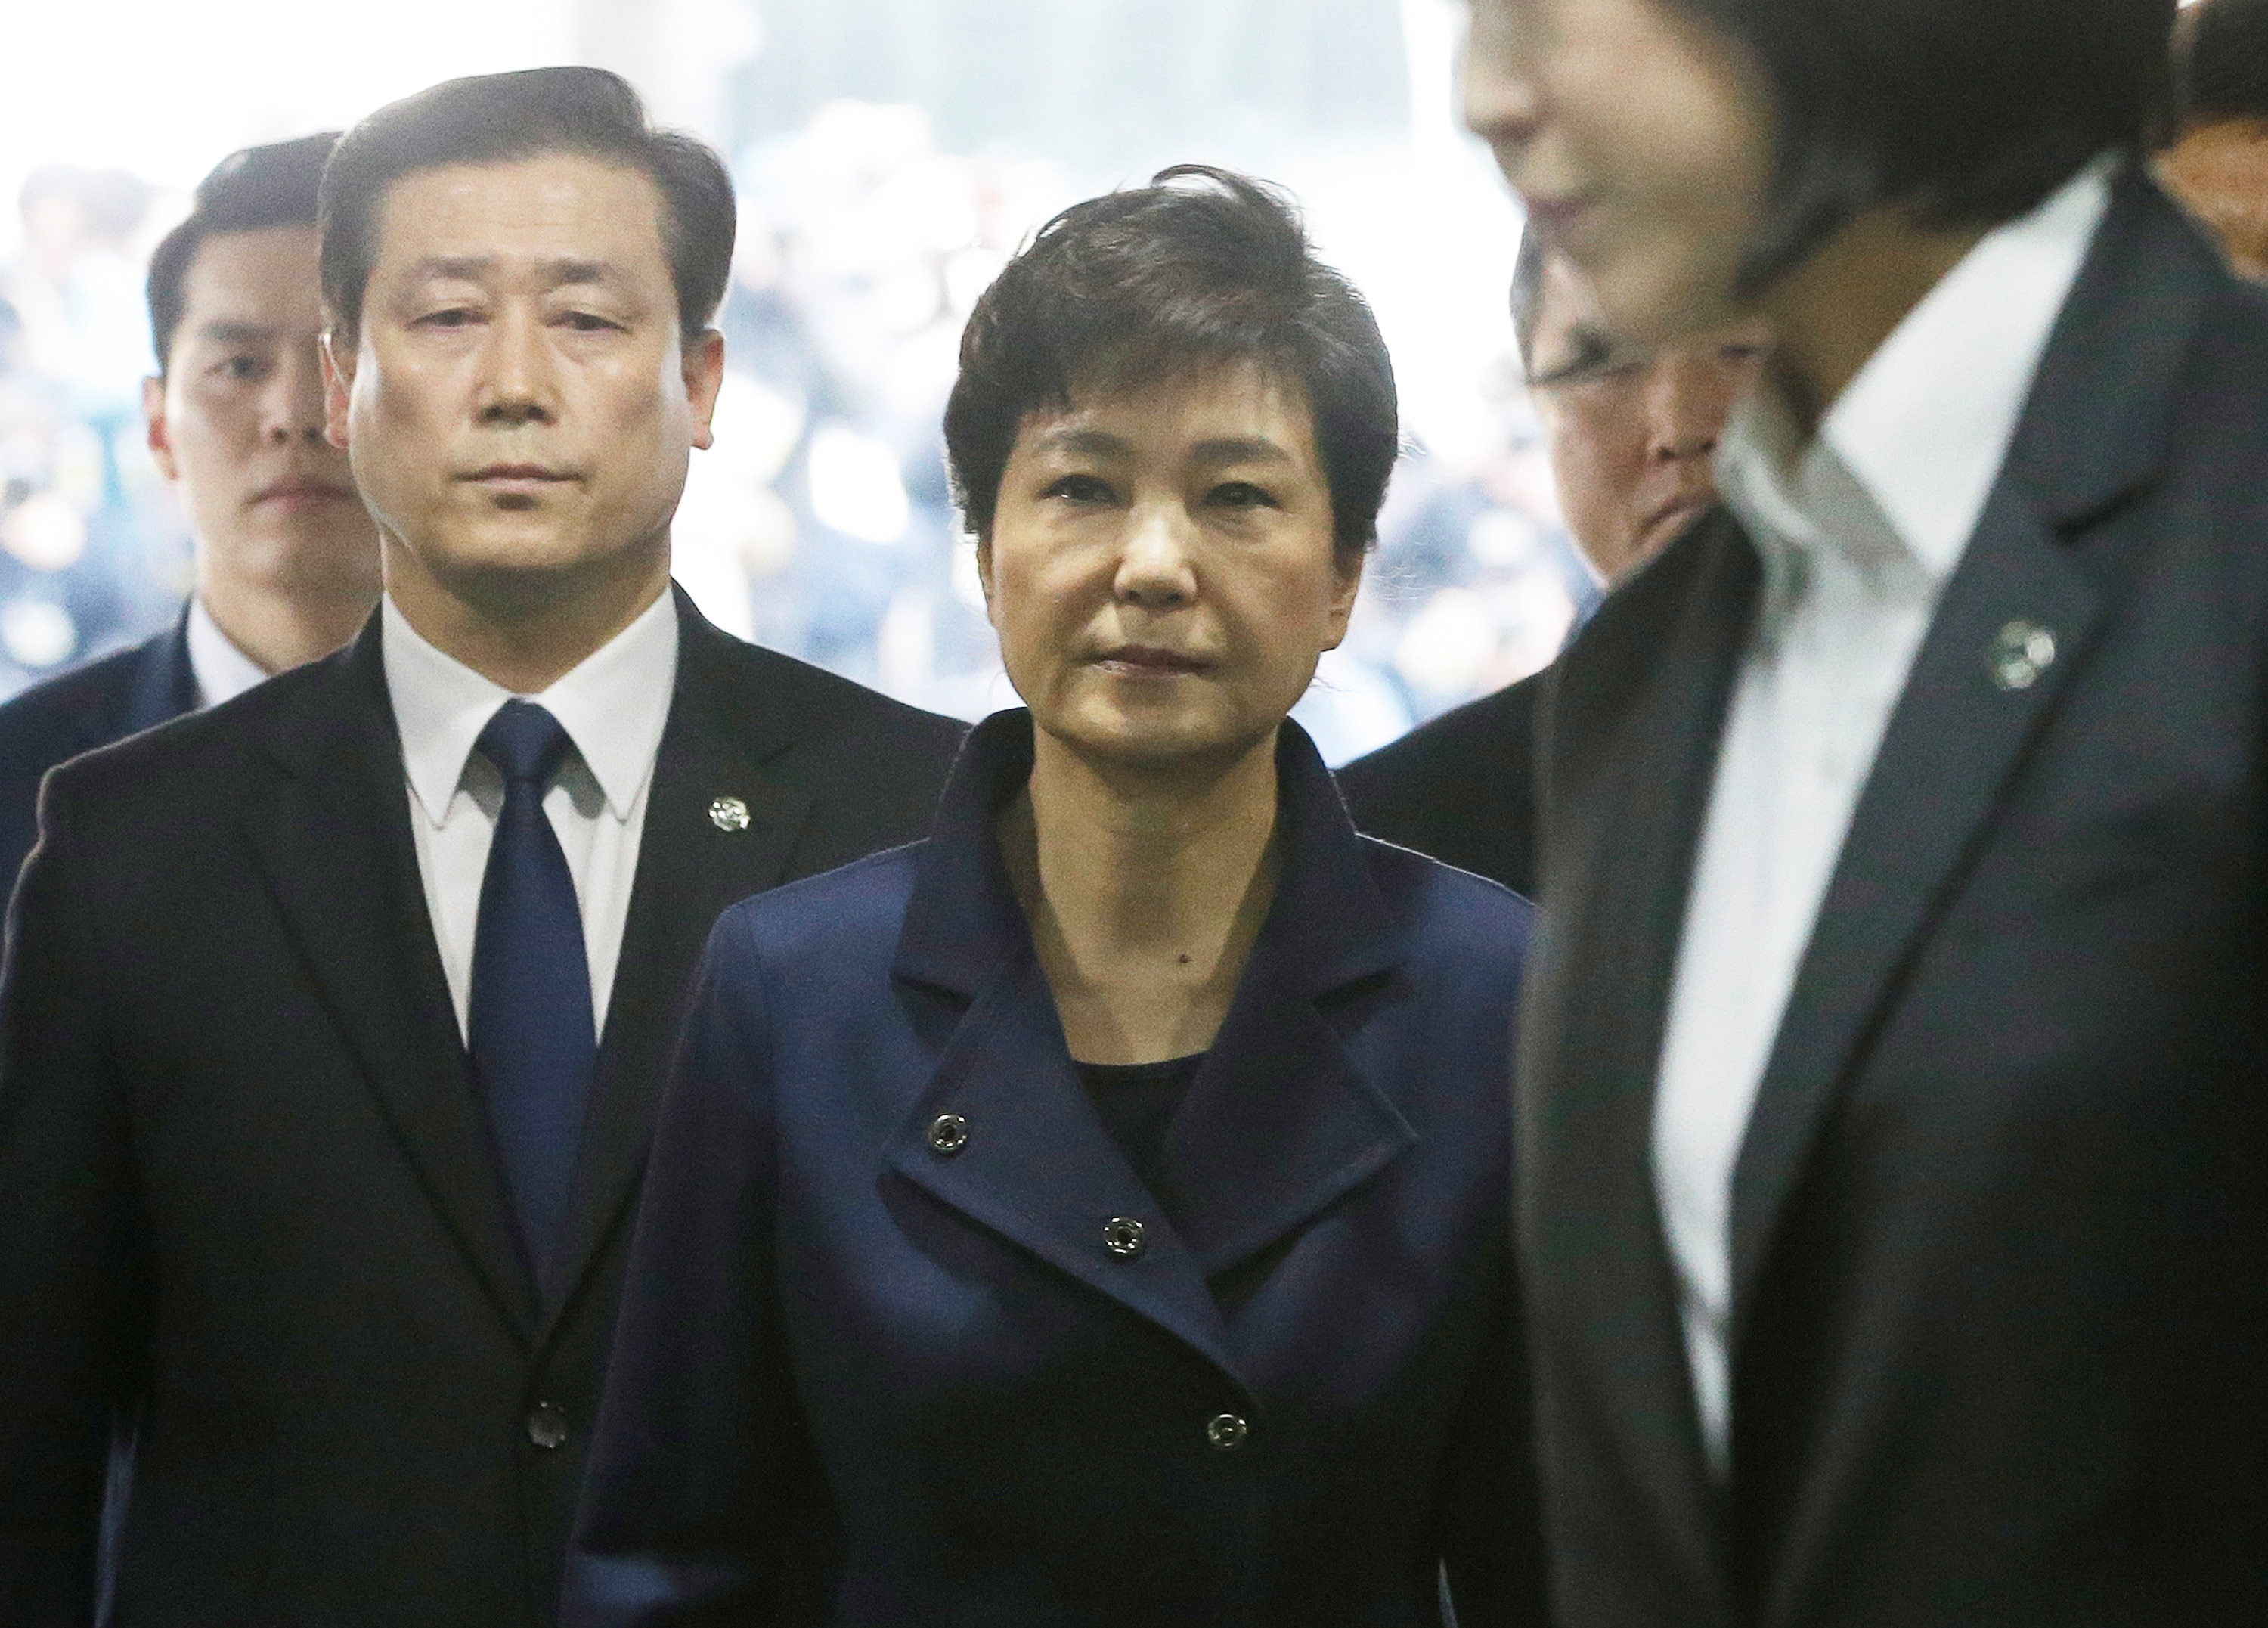 Ousted South Korean President Park Geun-hye arrives for questioning on her arrest warrant at the Seoul Central District Court in Seoul, South Korea on March 30, 2017. (REUTERS/Ahn Young-Joon/Pool)